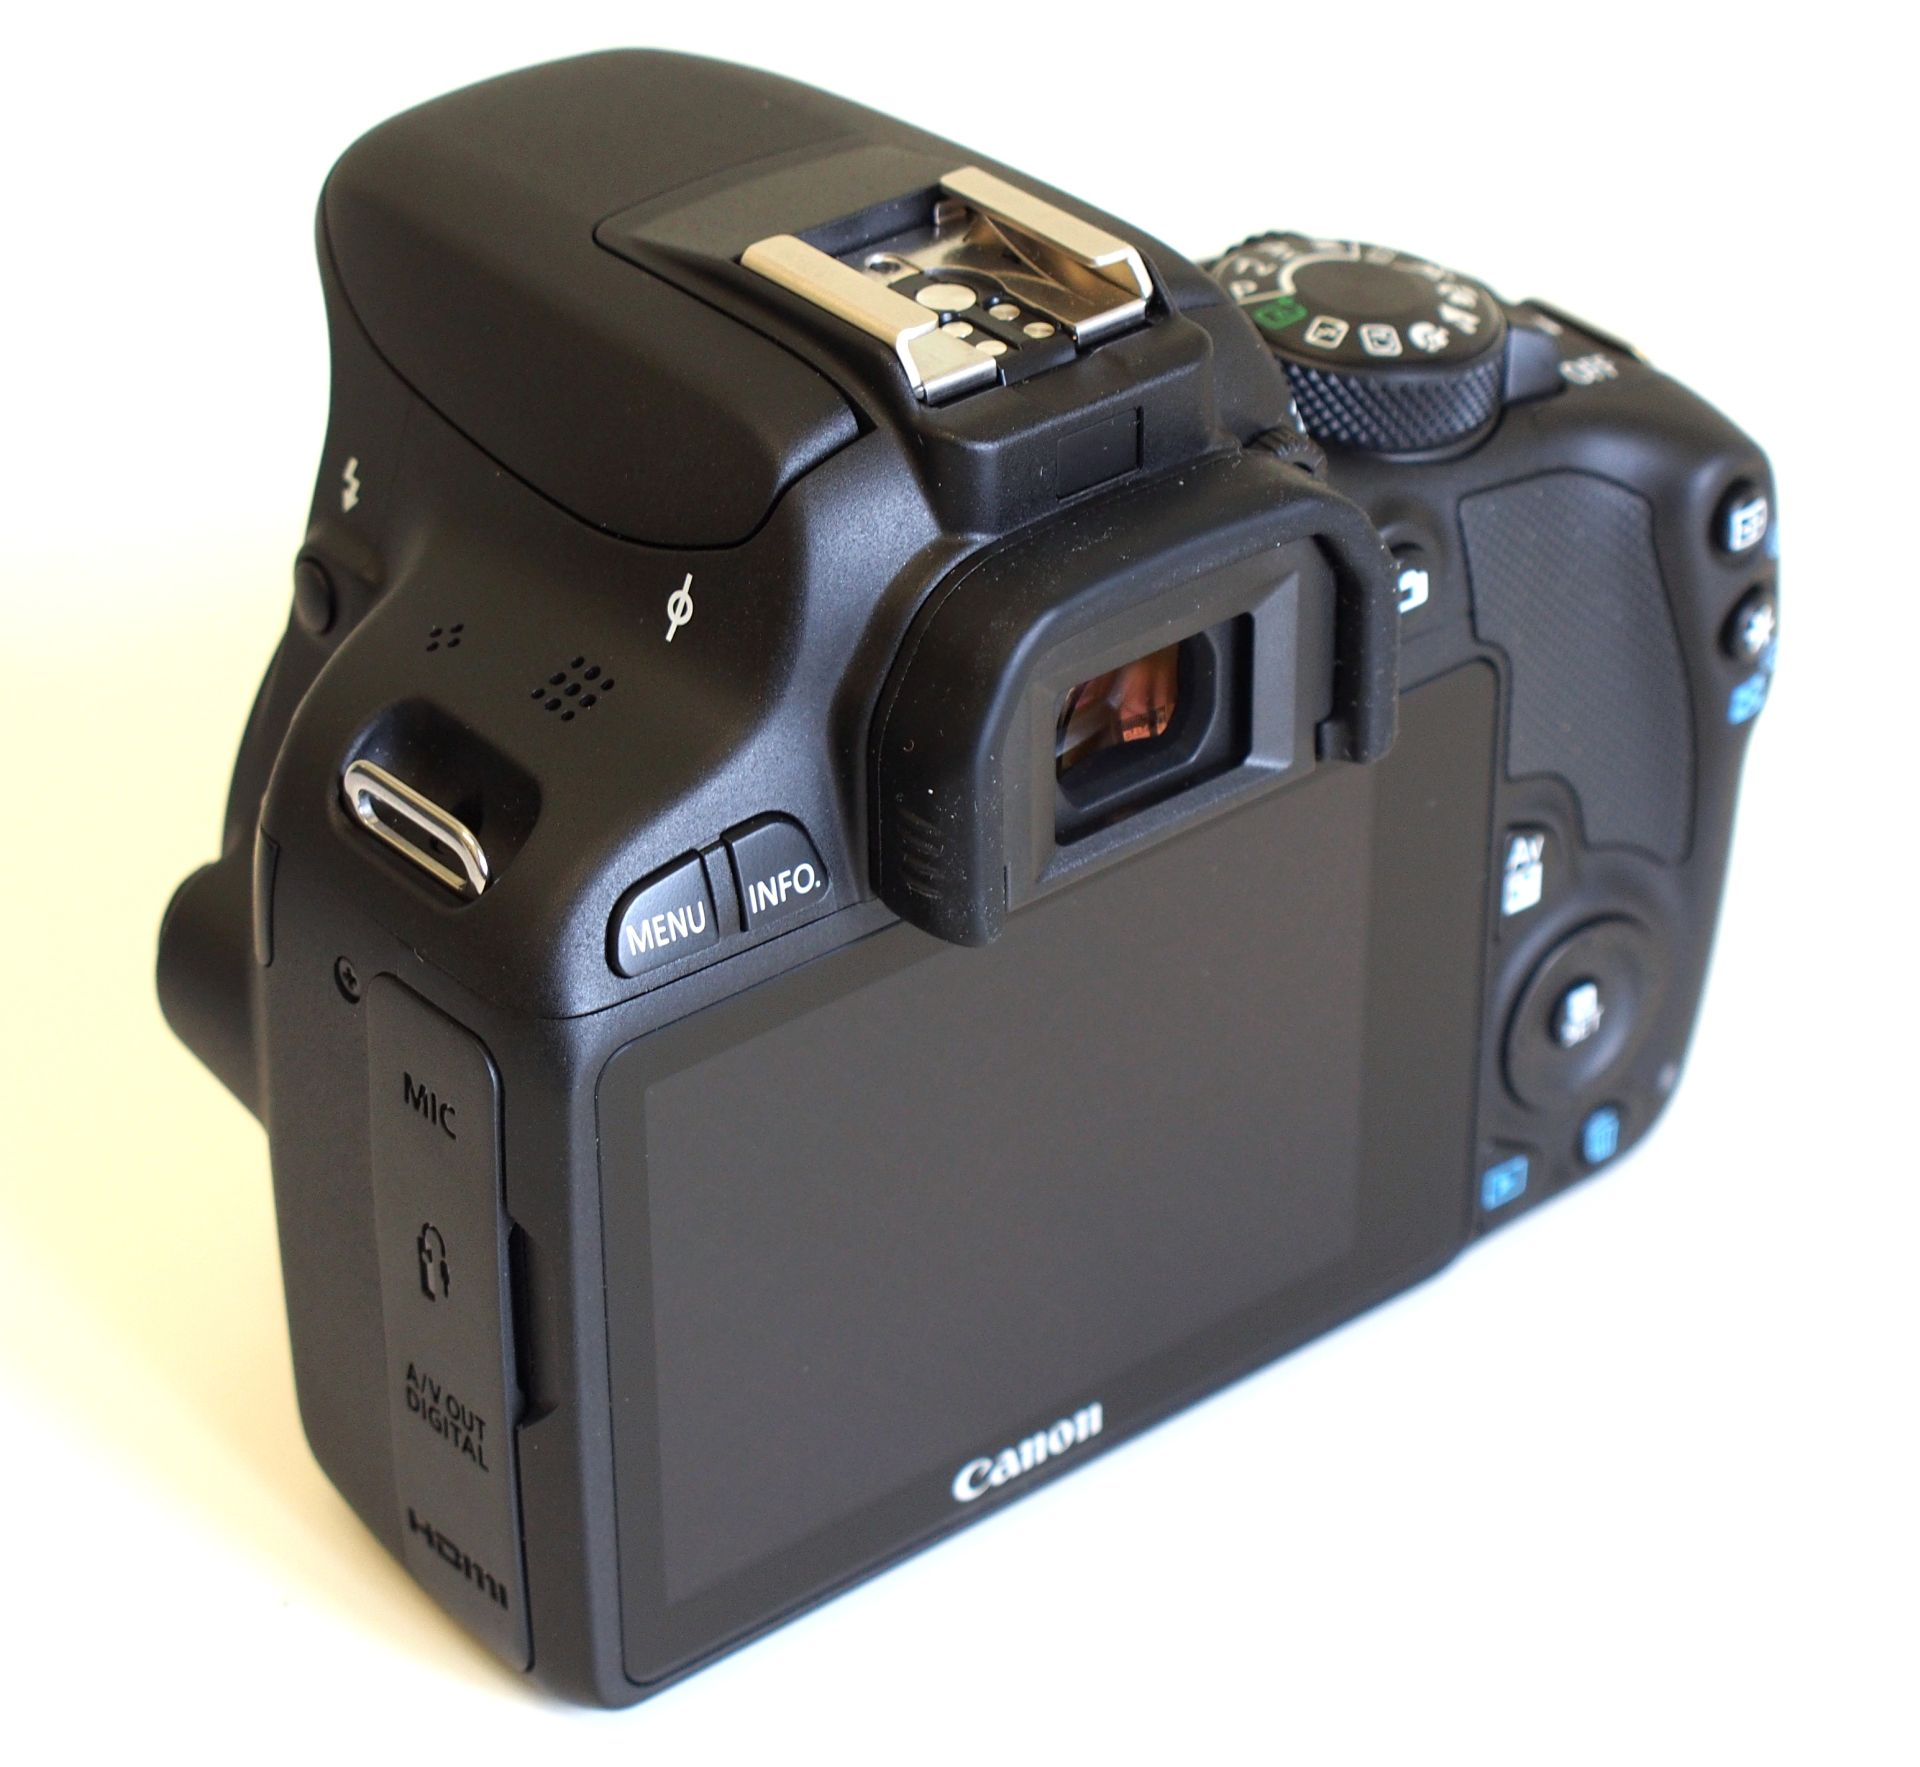 canon 80d firmware 1.0 2